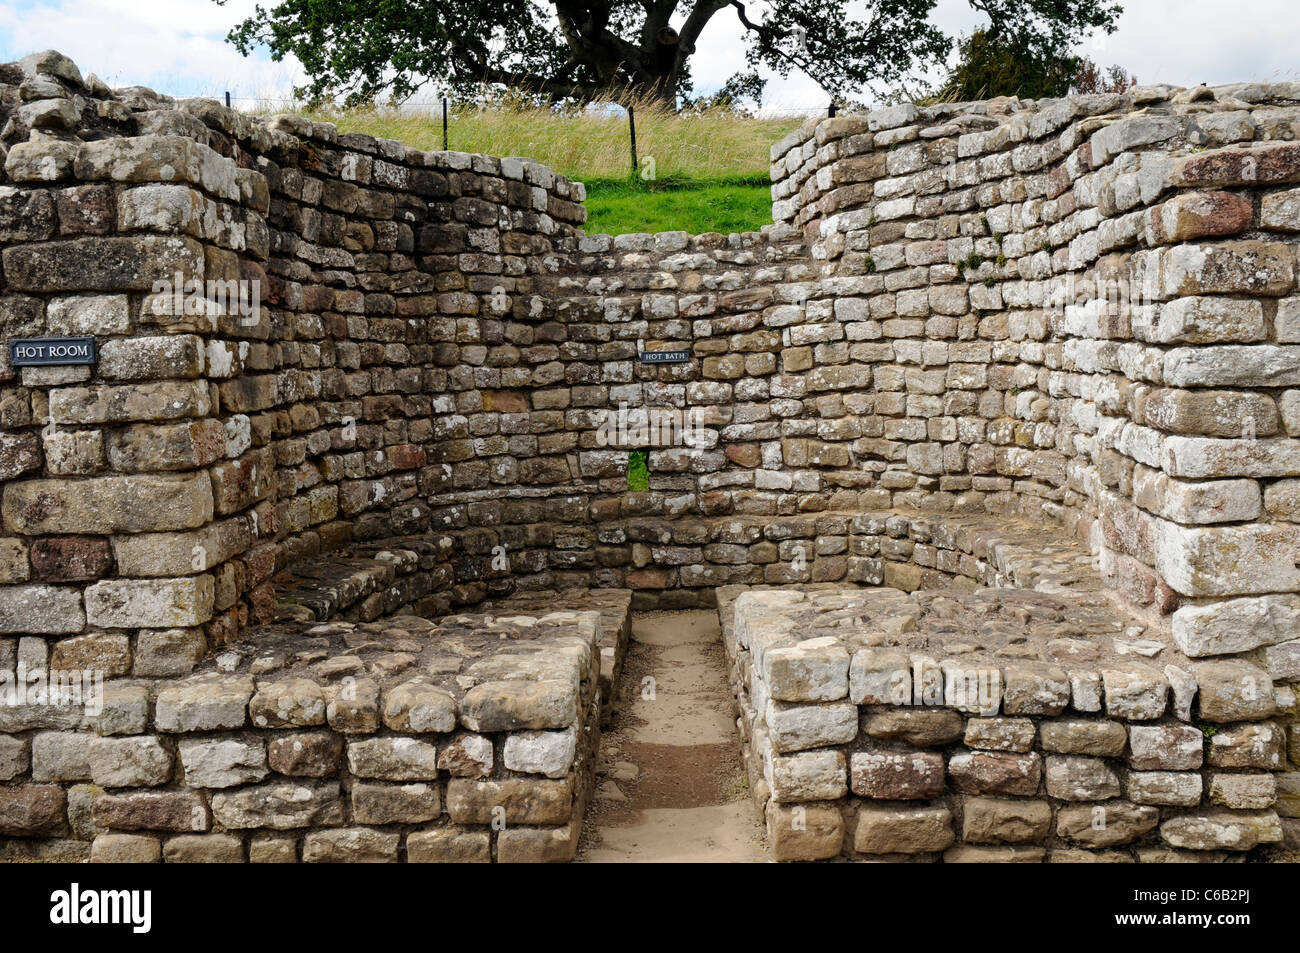 The warm room of Roman Bath House  ruins at Chesters Fort, on Hadrian's Wall, England. - Stock Image